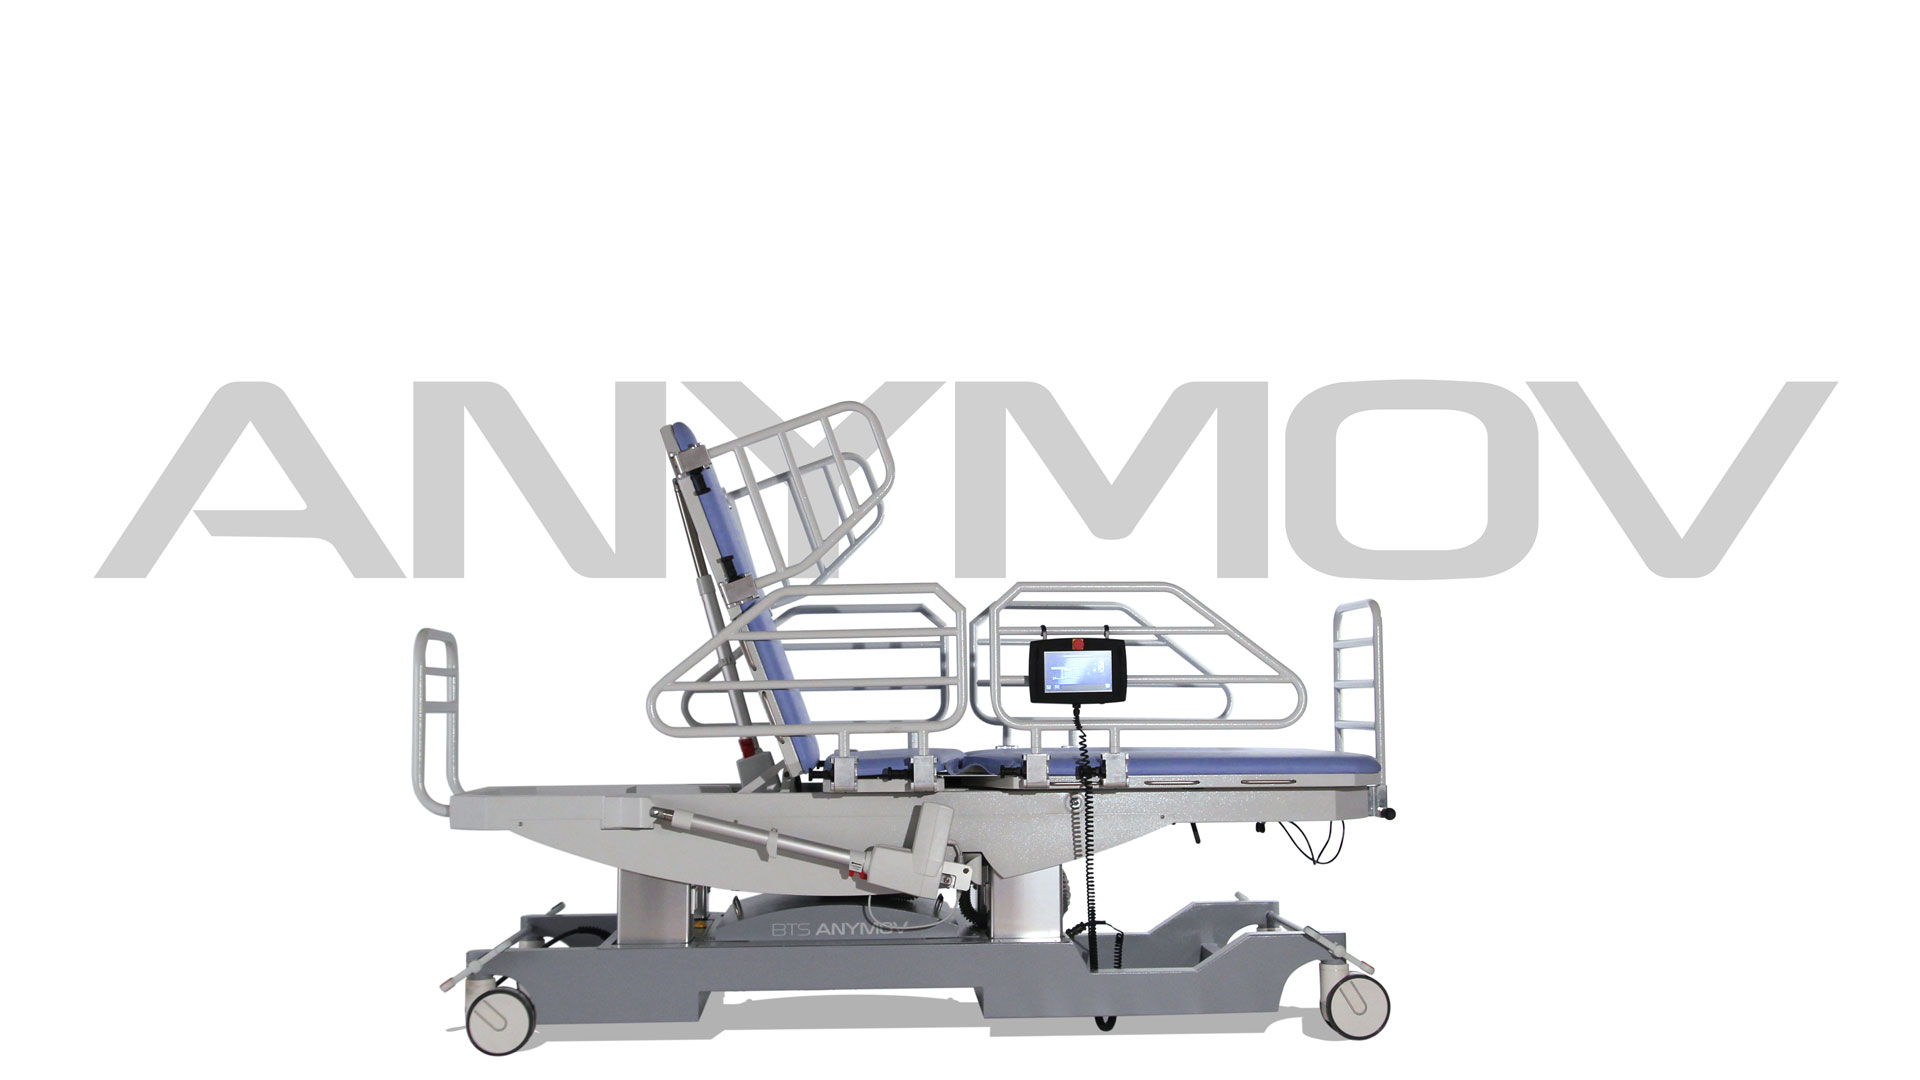 BTS ANYMOV robotic hospital bed